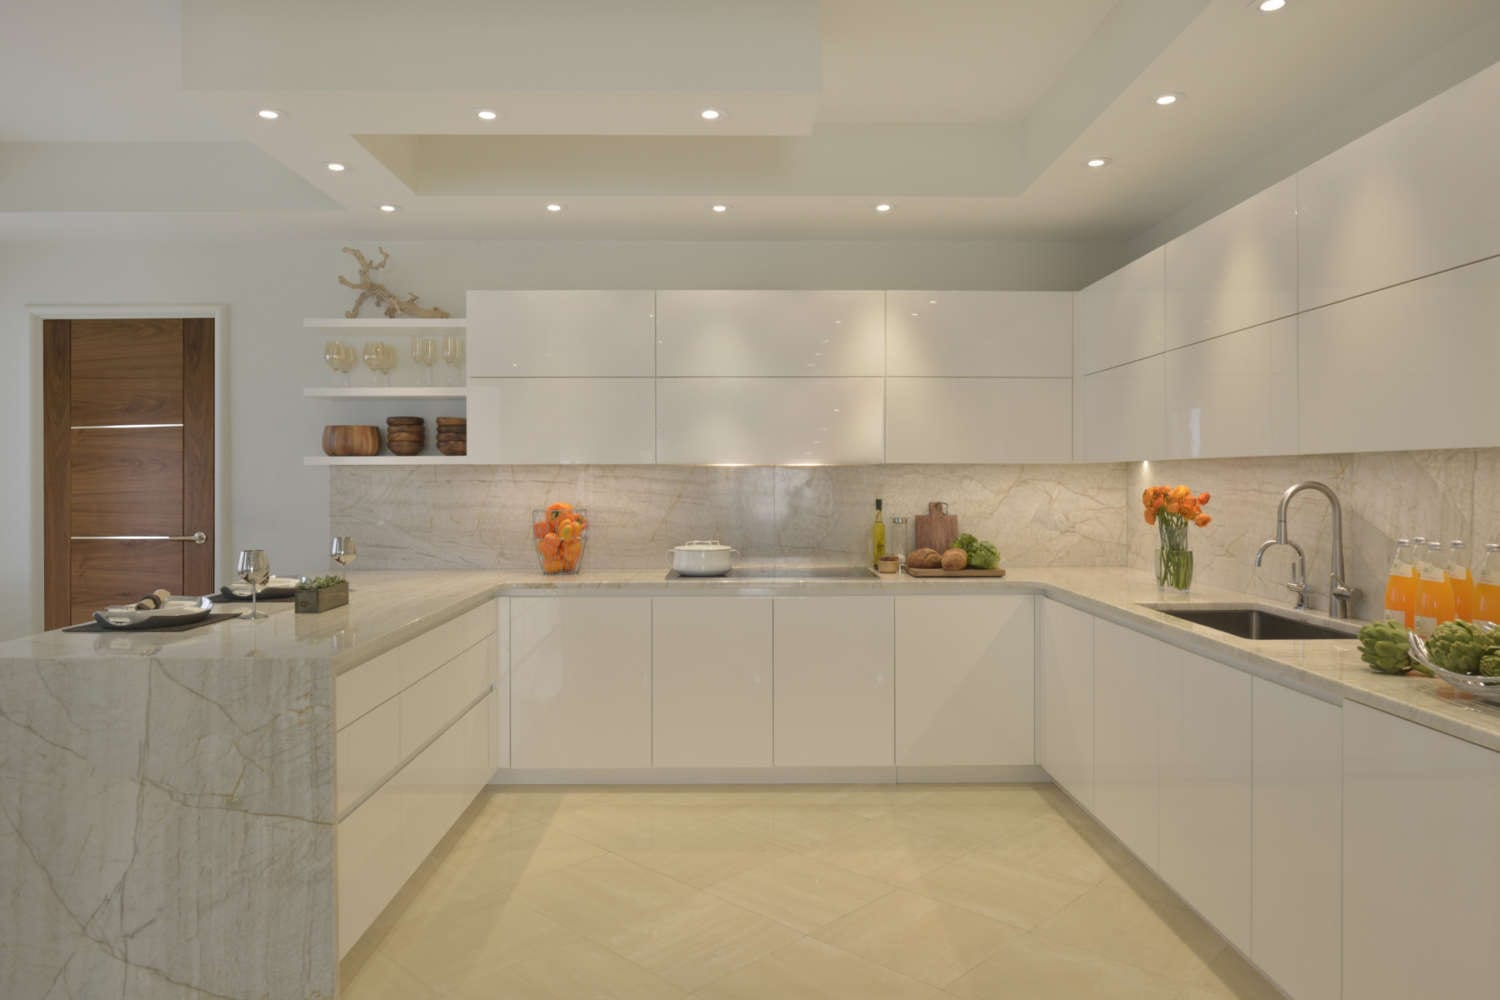 U-shaped kitchen features high gloss white, flat panel fully custom Artcraft cabinetry, light marble countertop and backsplash with veining, light porcelain tile flooring, open shelving and soft lighting. Design by Tabitha Tepe of Bilotta Kitchens.